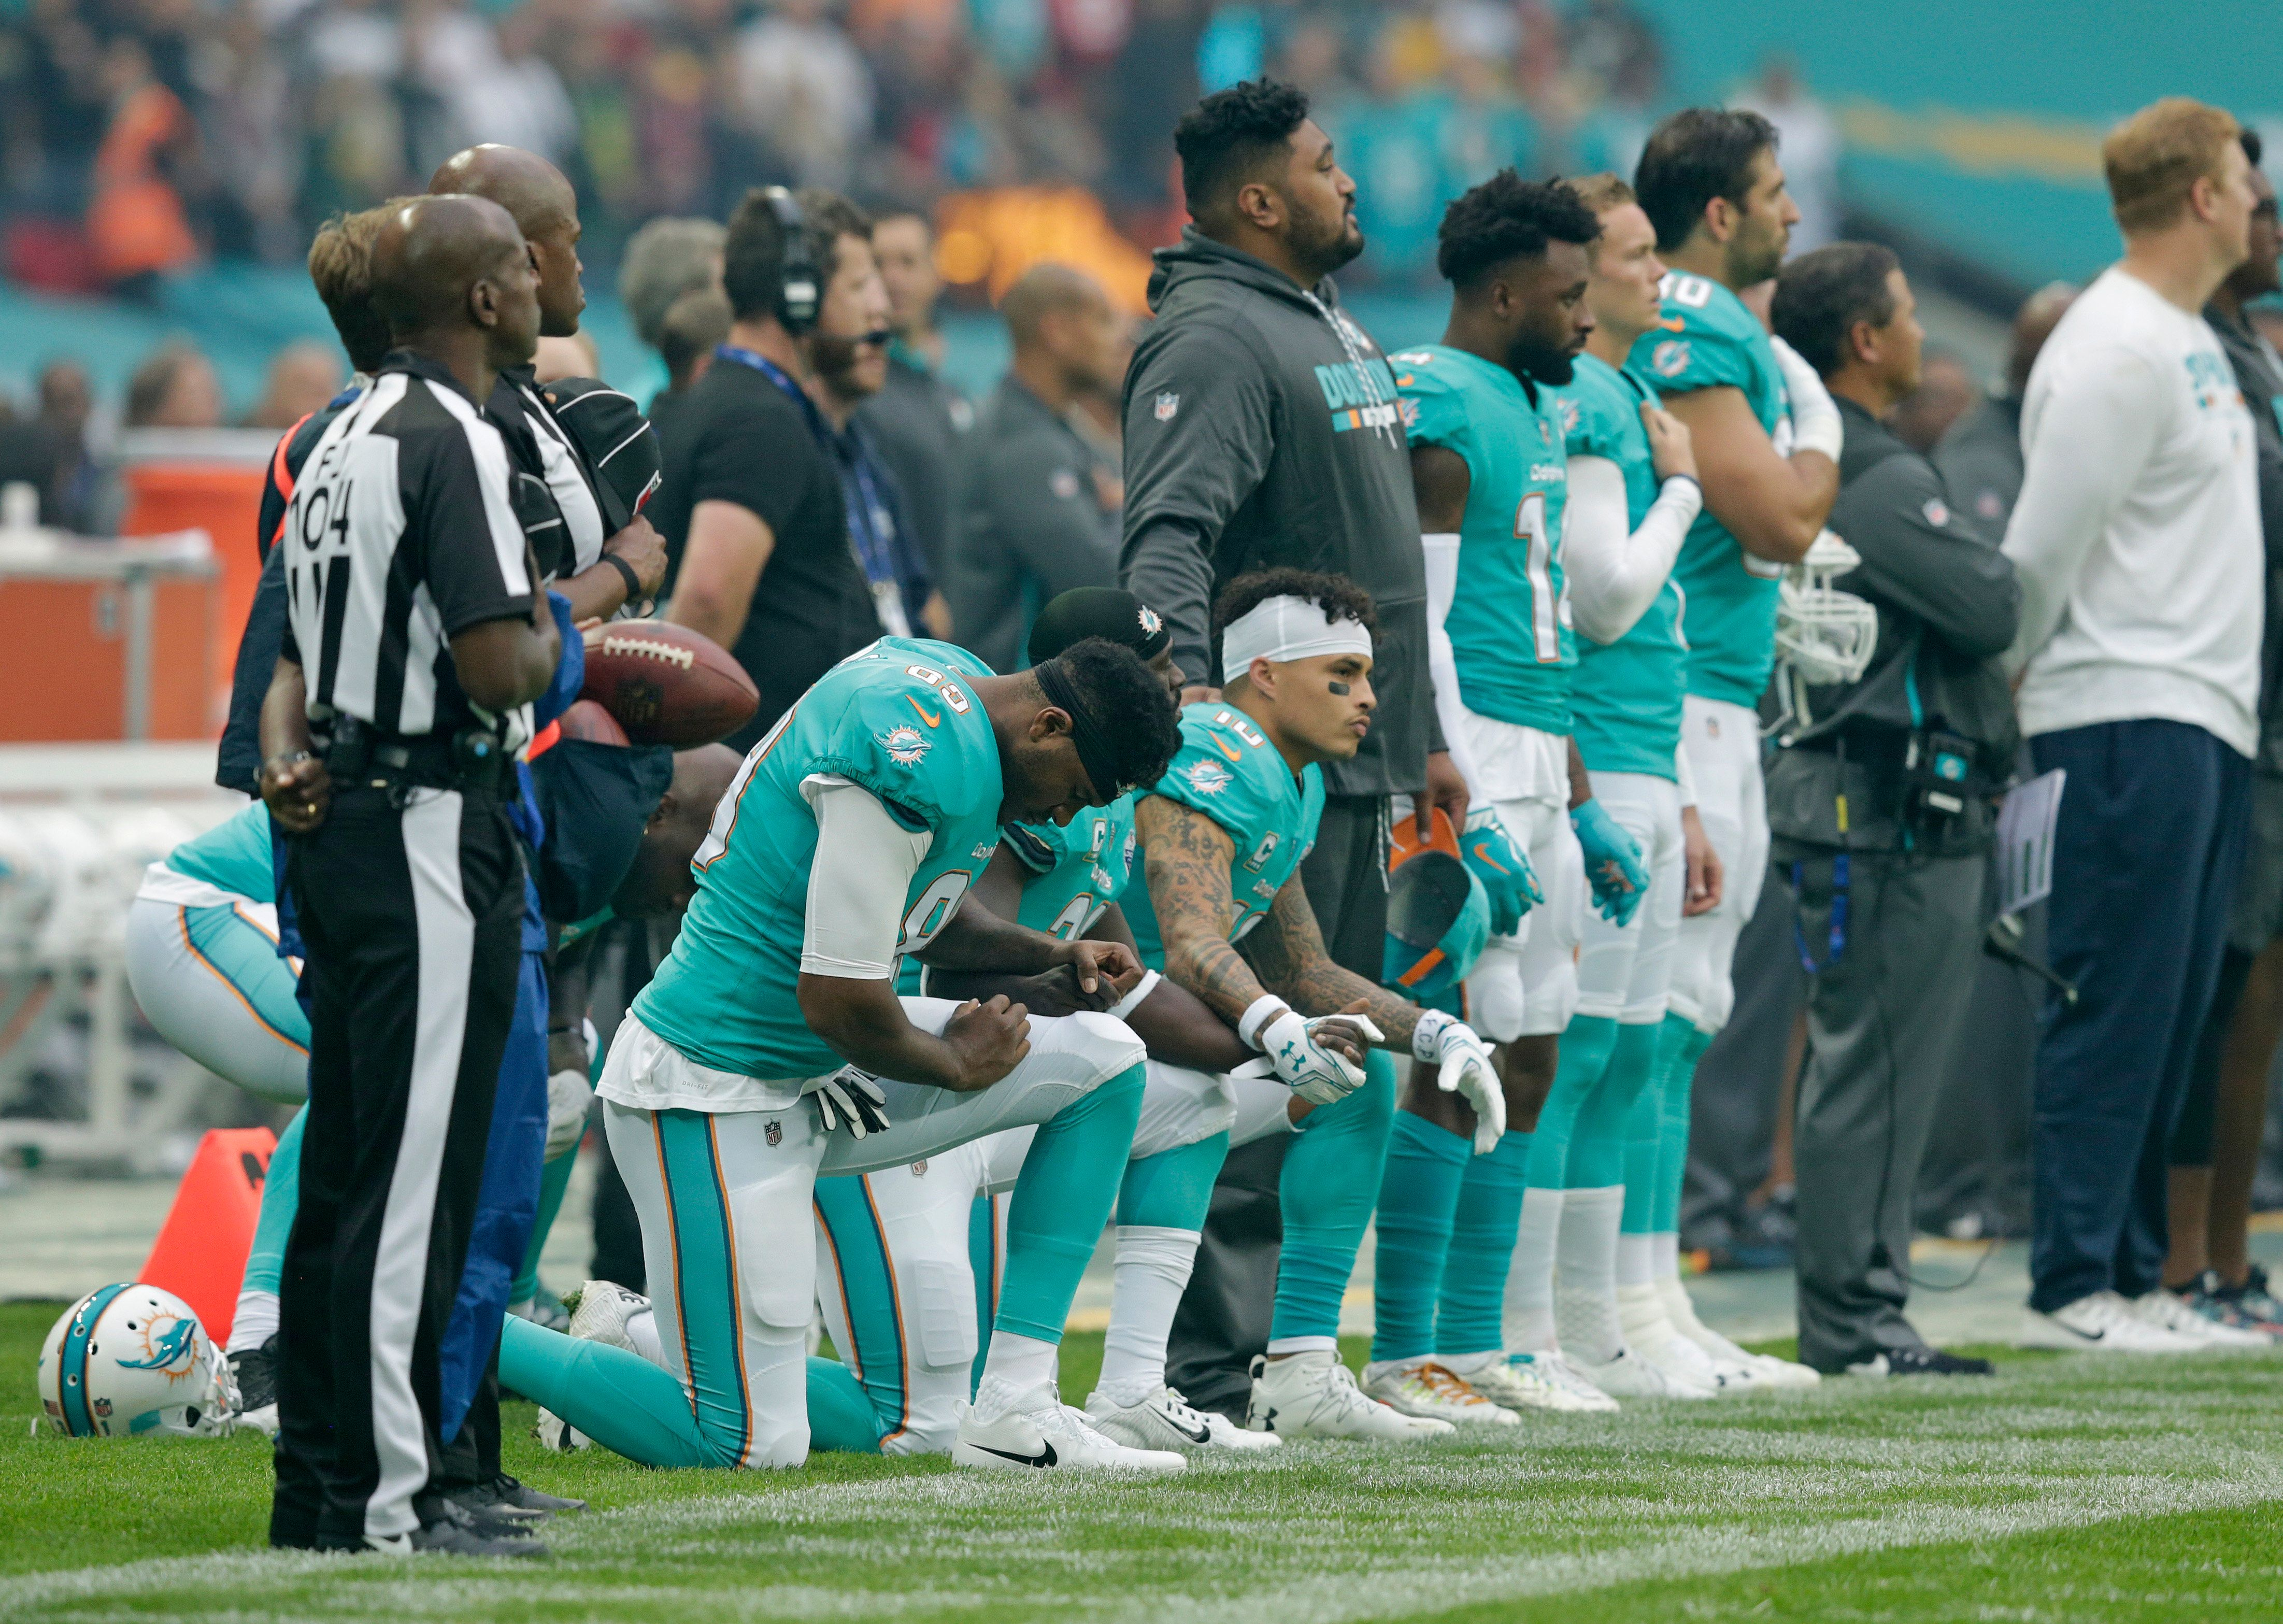 Dolphins playersKenny Stills, Michael Thomas and Julius Thomas kneel before their Sunday game in London, England.